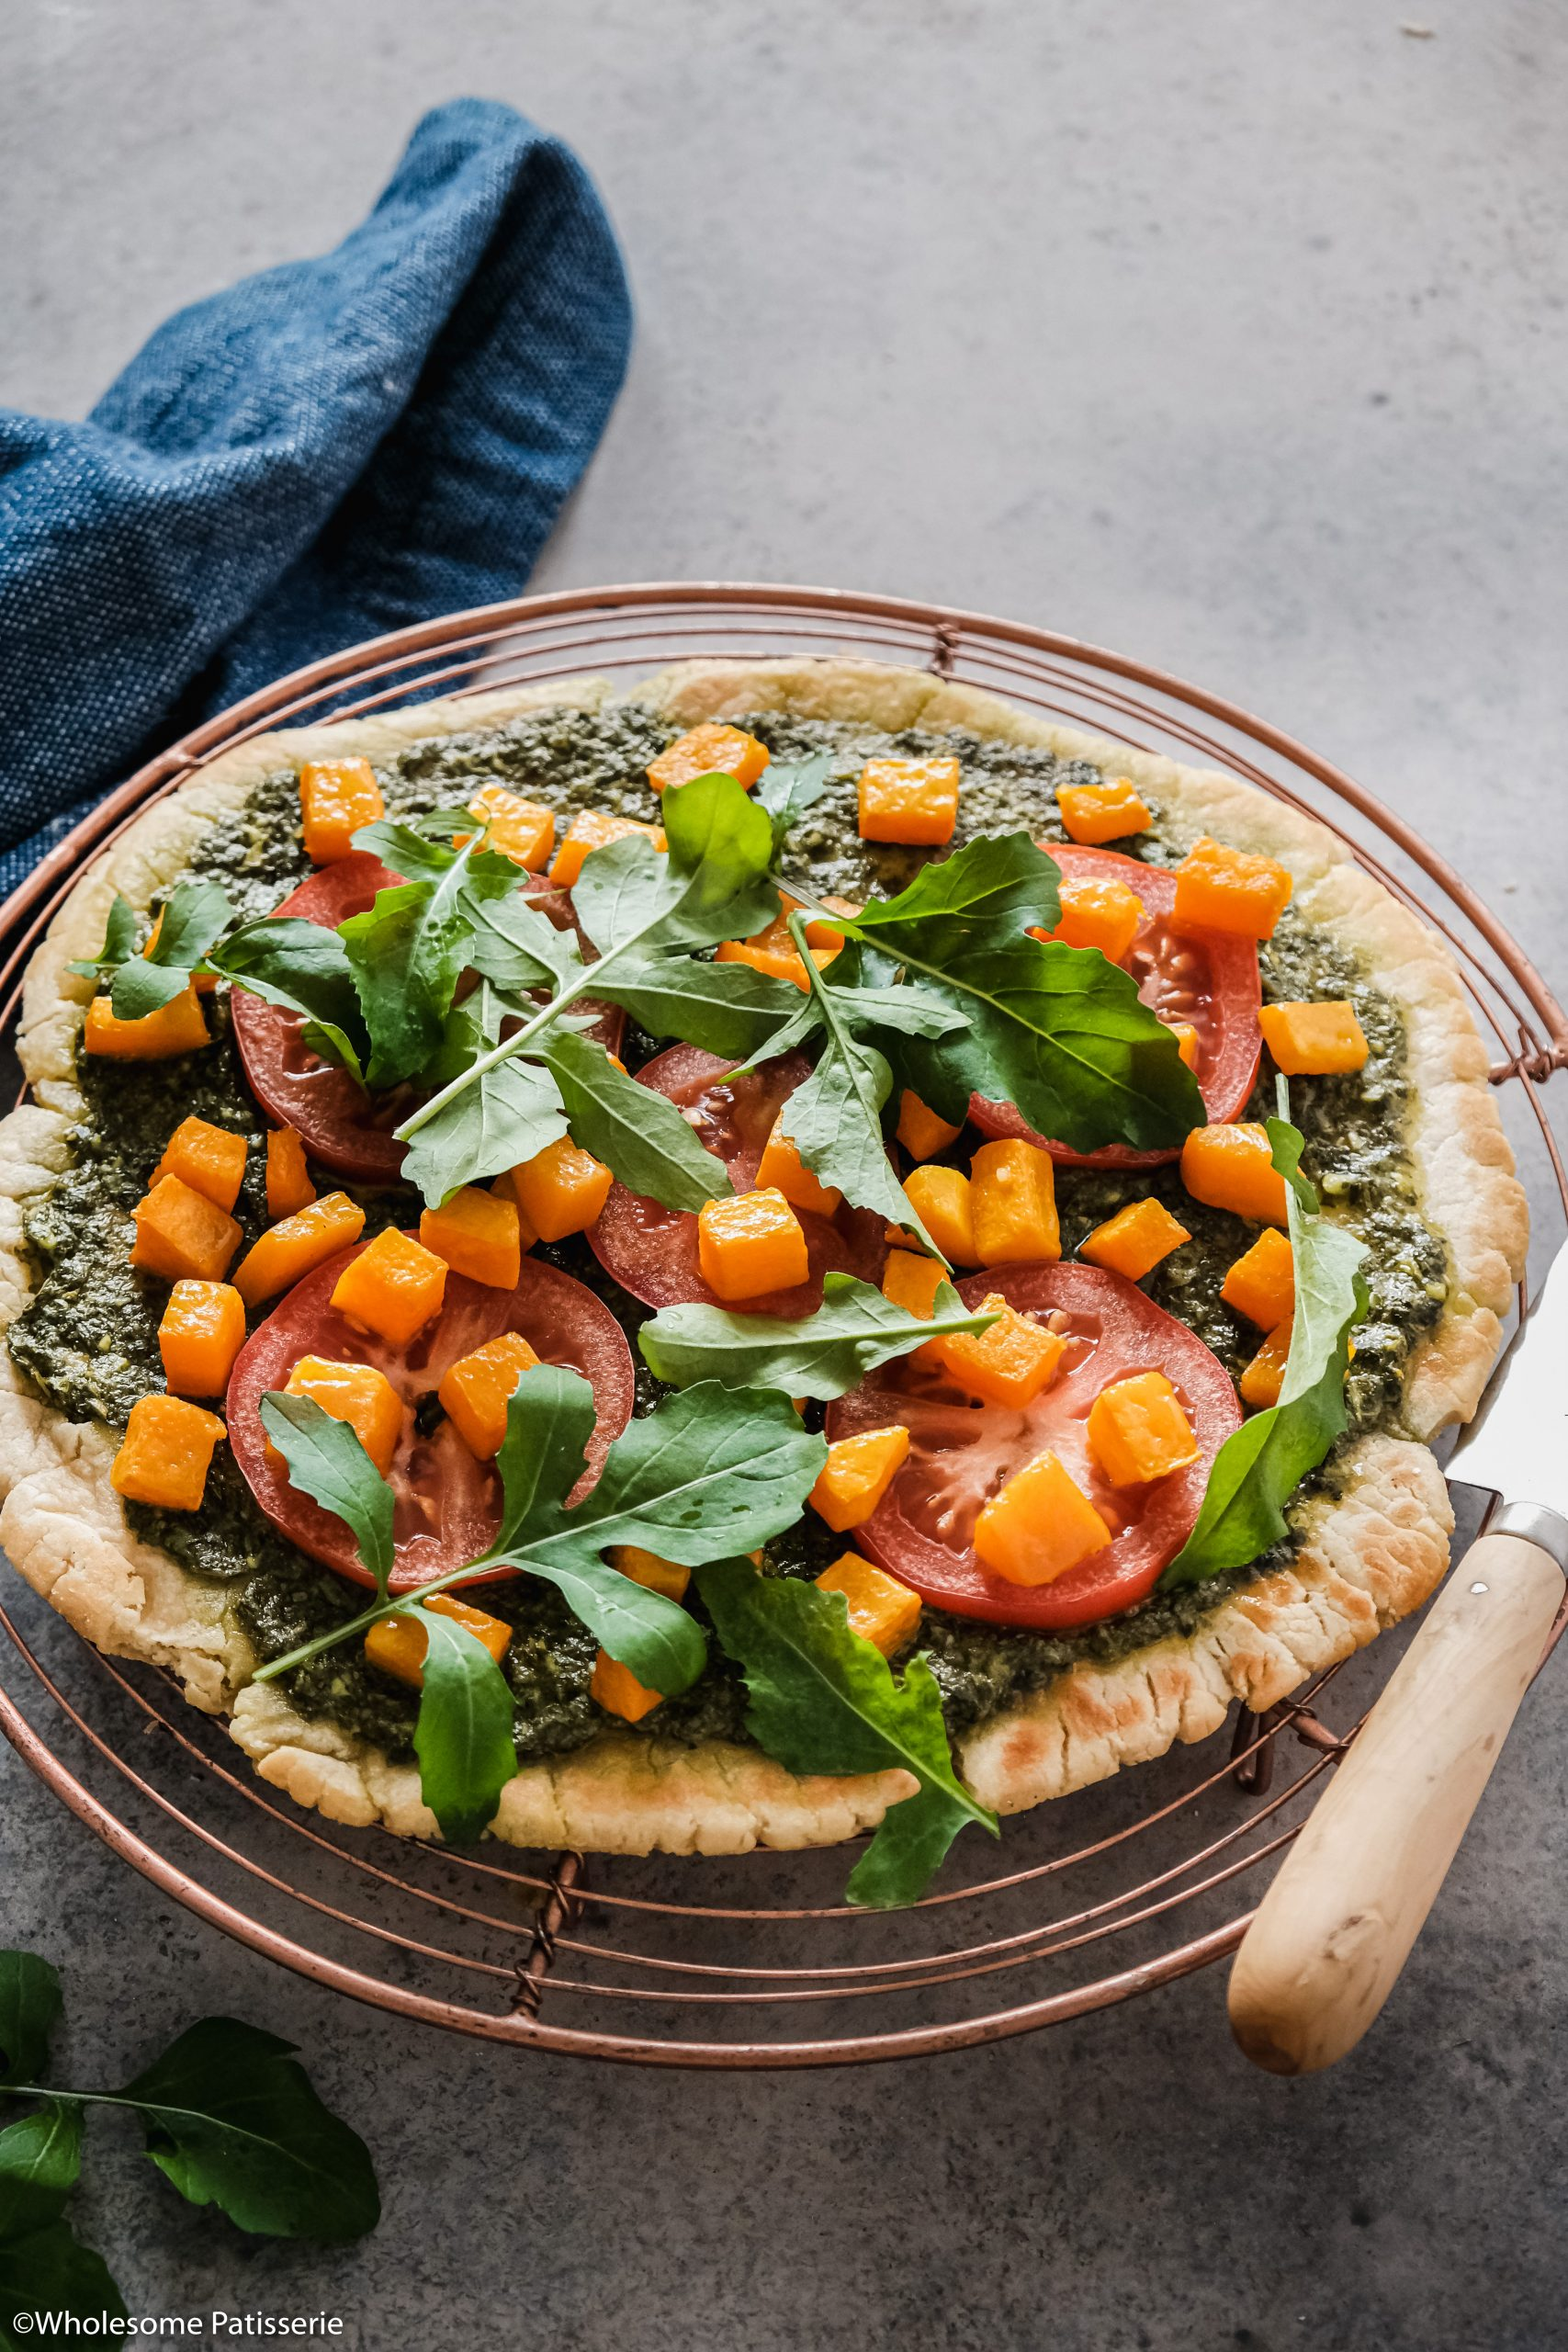 Pesto & Roasted Pumpkin, Tomato Flat Bread! This easy 5-ingredient flat bread whips up in no time, then it's ready for it's toppings! First spread with a spinach and basil pesto, your choice of either store-bought or homemade. I recommend using my Pesto Recipe and halving it, making it the perfect quantity to spread on your flat bread. Then you'll top it with fresh slices of tomato, roasted pumpkin cubed and fresh rocket!